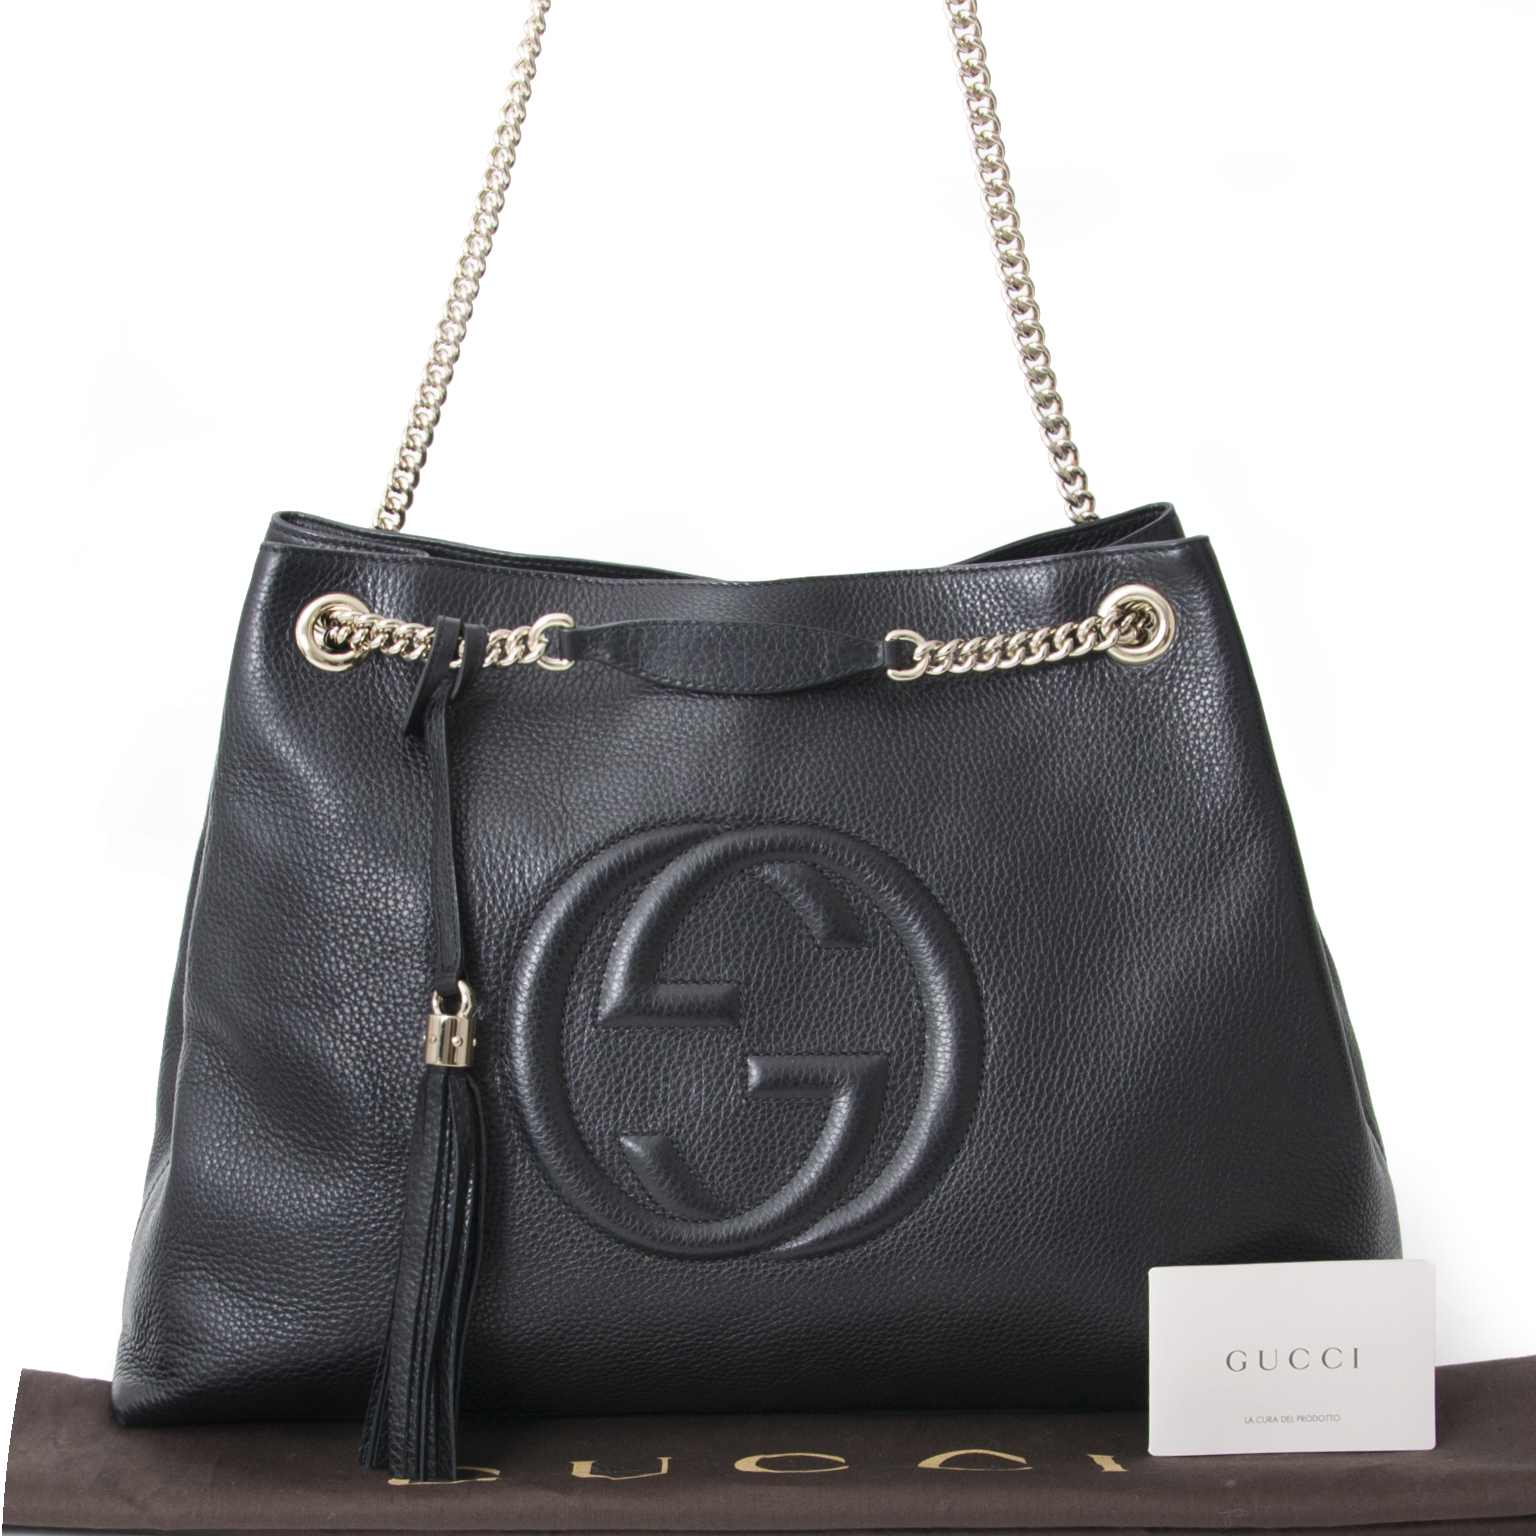 34ff49592 Buy authentic Gucci Soho Bag at the right price at LabelLOV vintage  webshop. Luxe